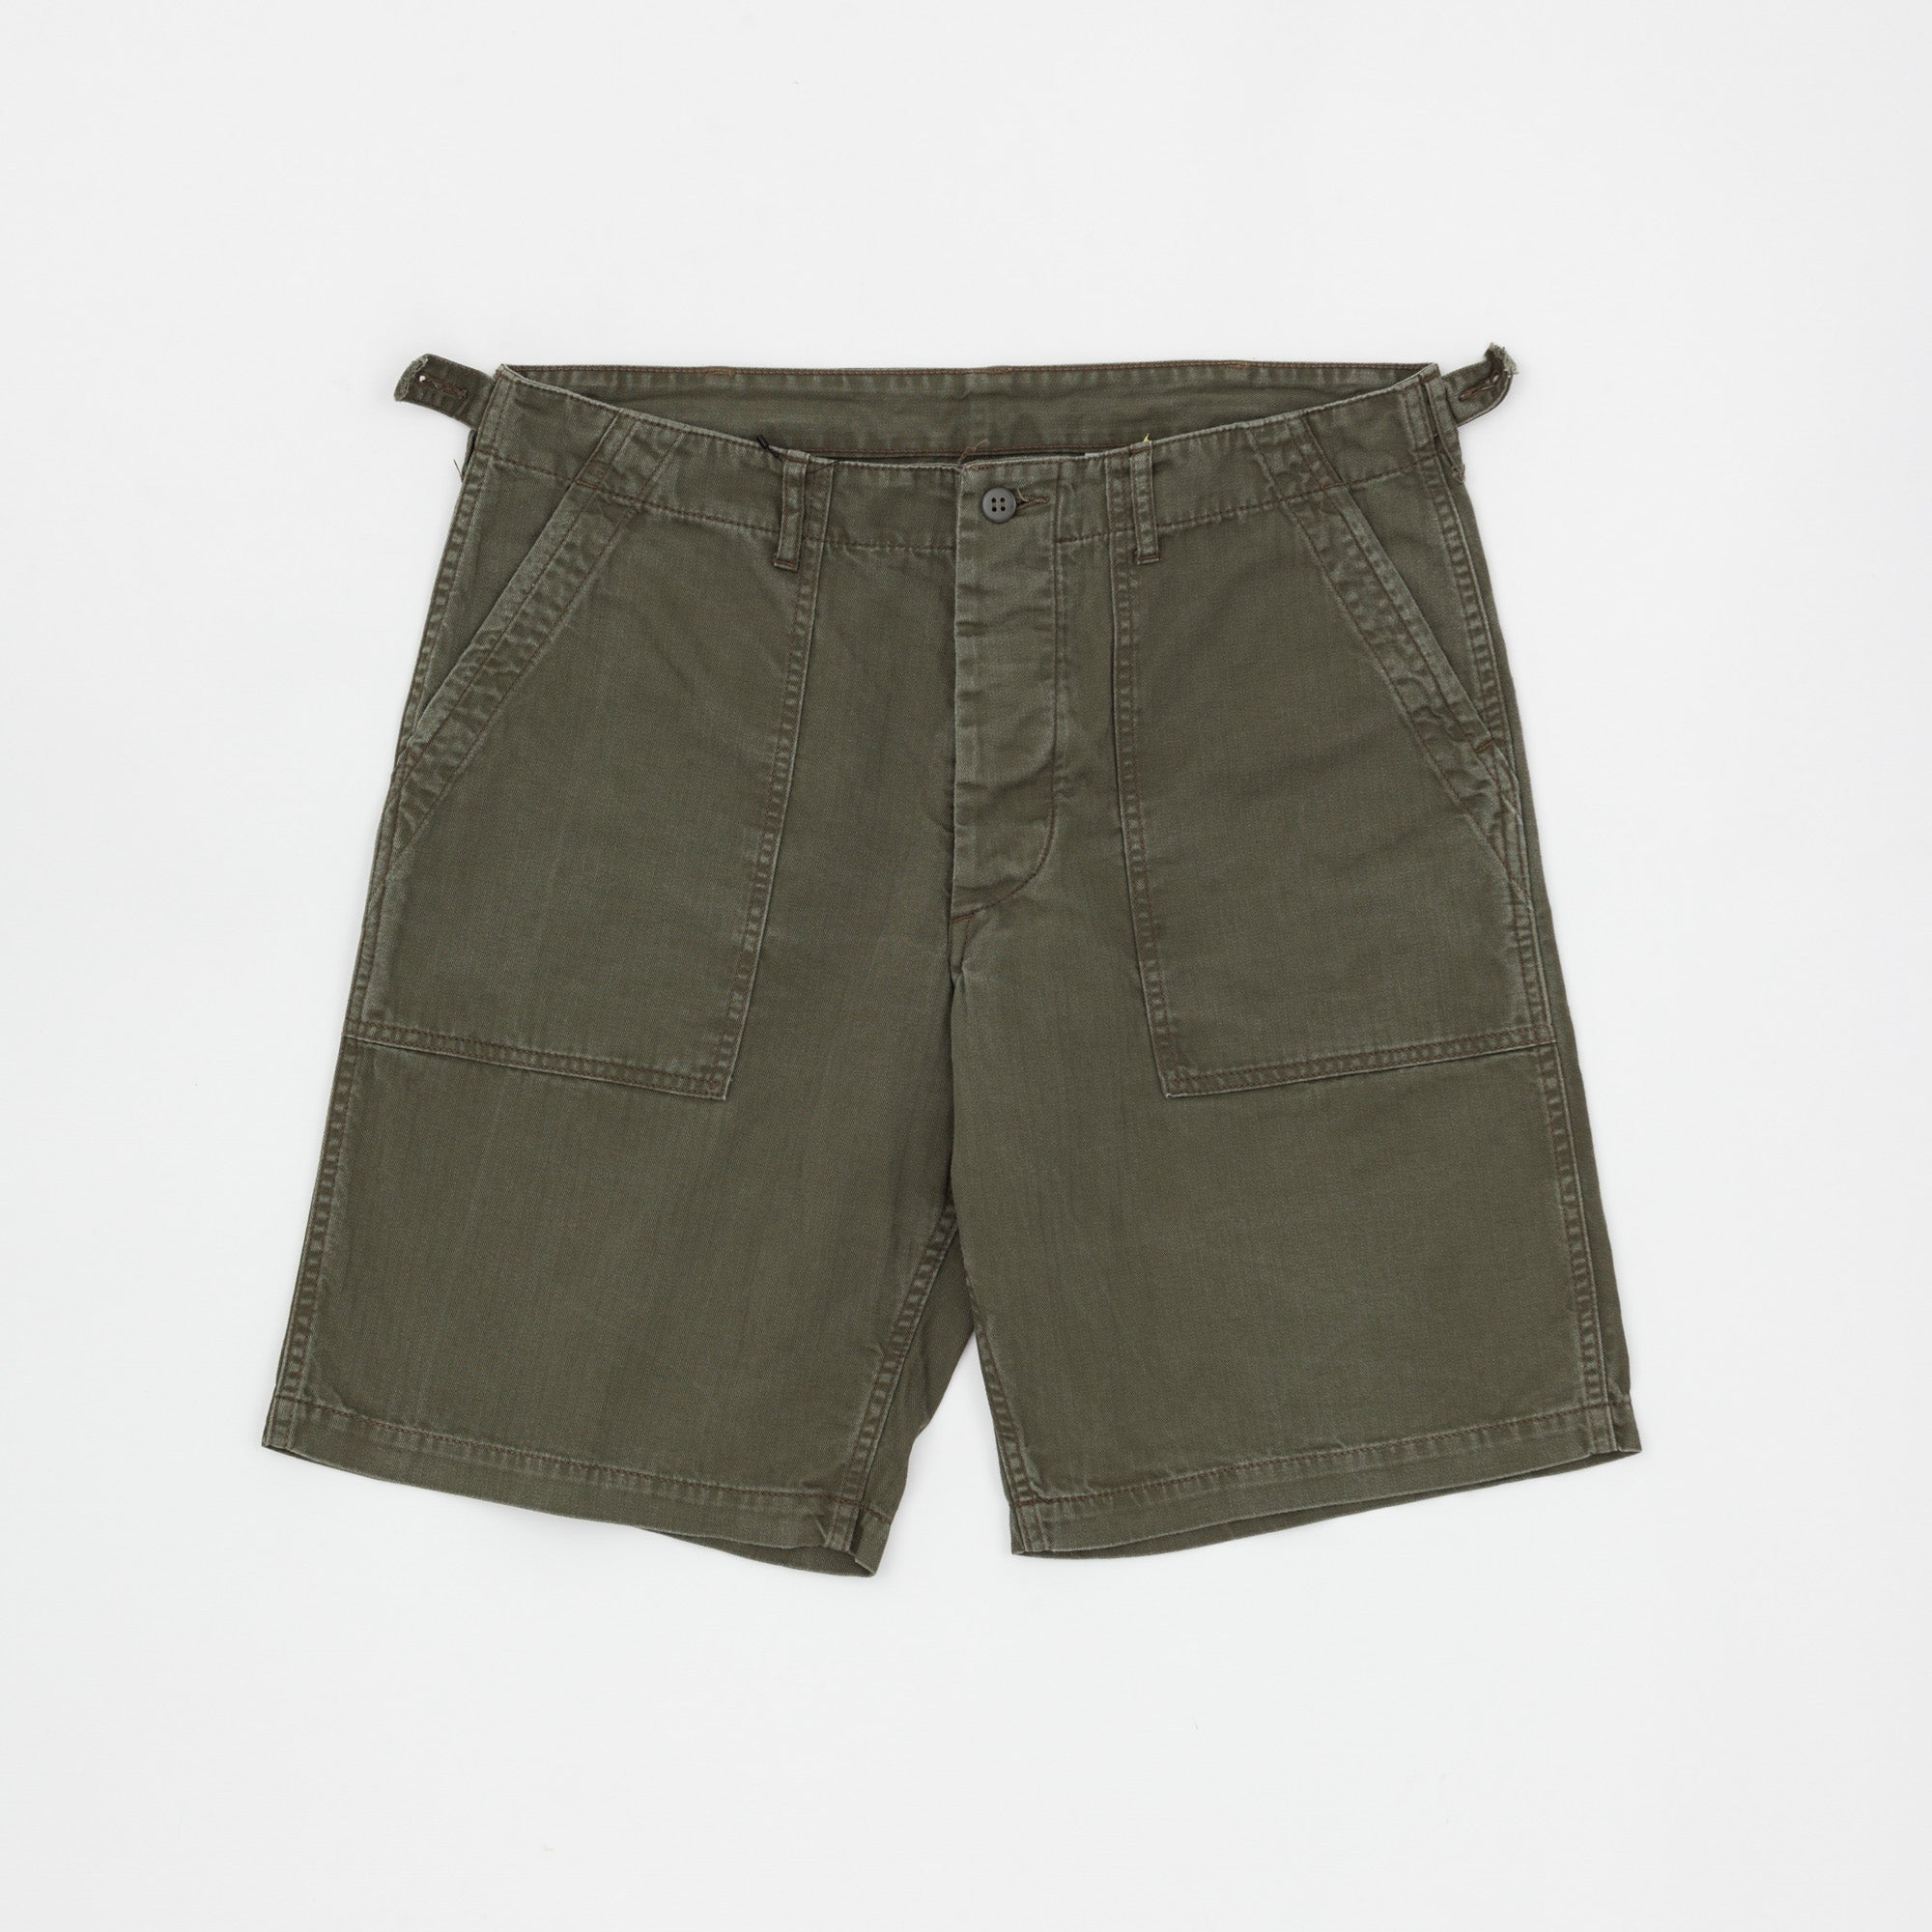 The Real McCoy's Sateen Utility Shorts